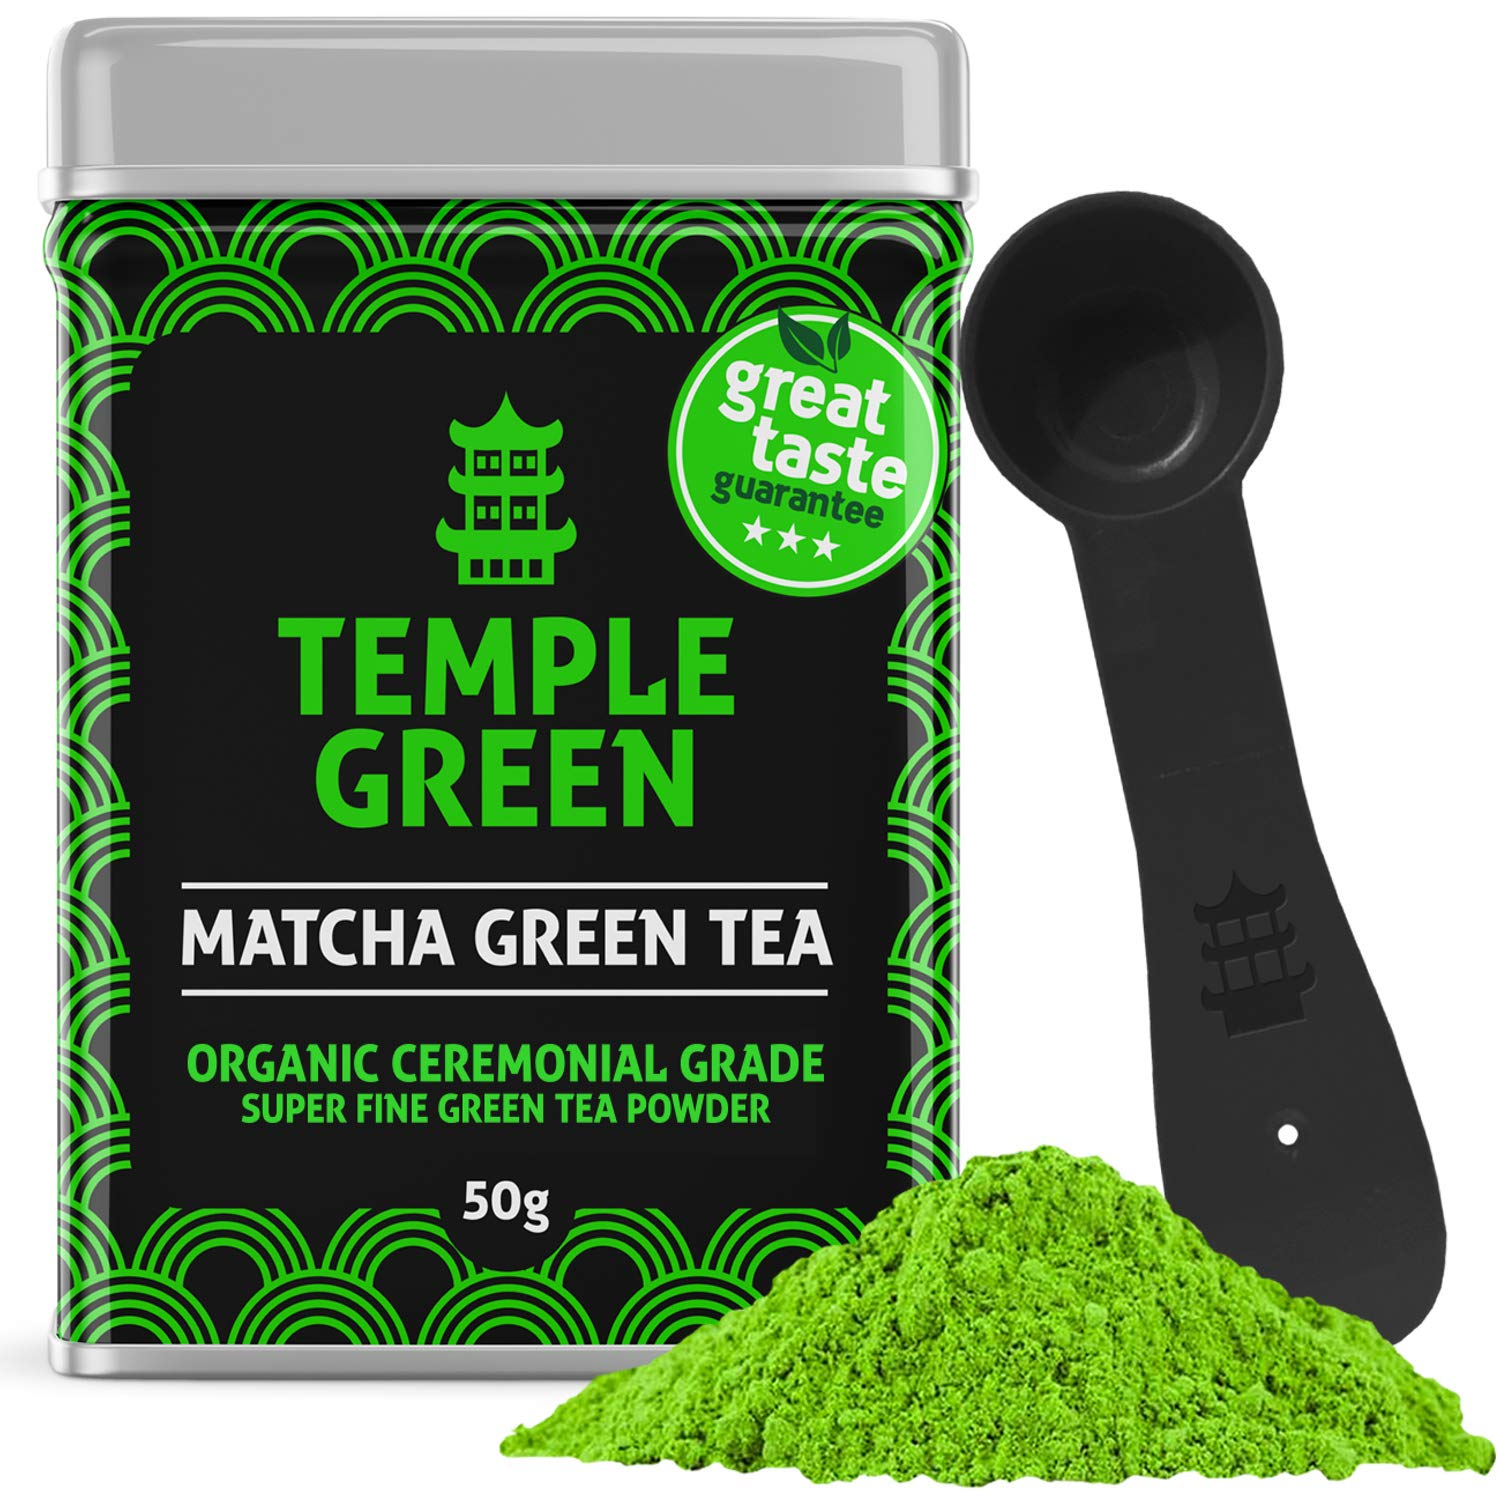 Temple Green Matcha Green Tea - Genuine Ceremonial Japanese Powder for Mood Energy Focus - All Organic Stone-Ground Ingredients for Health, Skin & Metabolism - Easy Mix Great Taste 50g Spoon & Guide